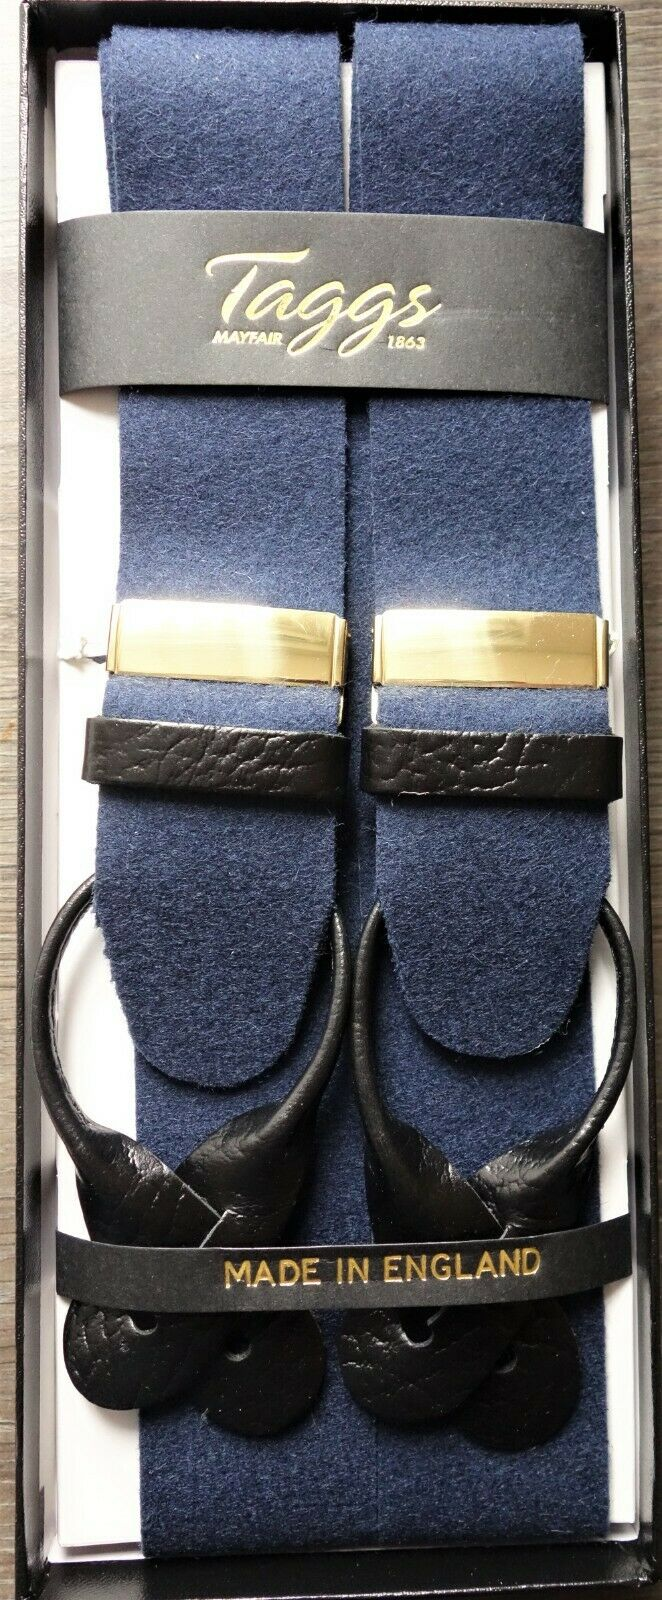 Taggs Navy Woolfelt Braces Y Back fitting with Black leather Ends Gold Fittings